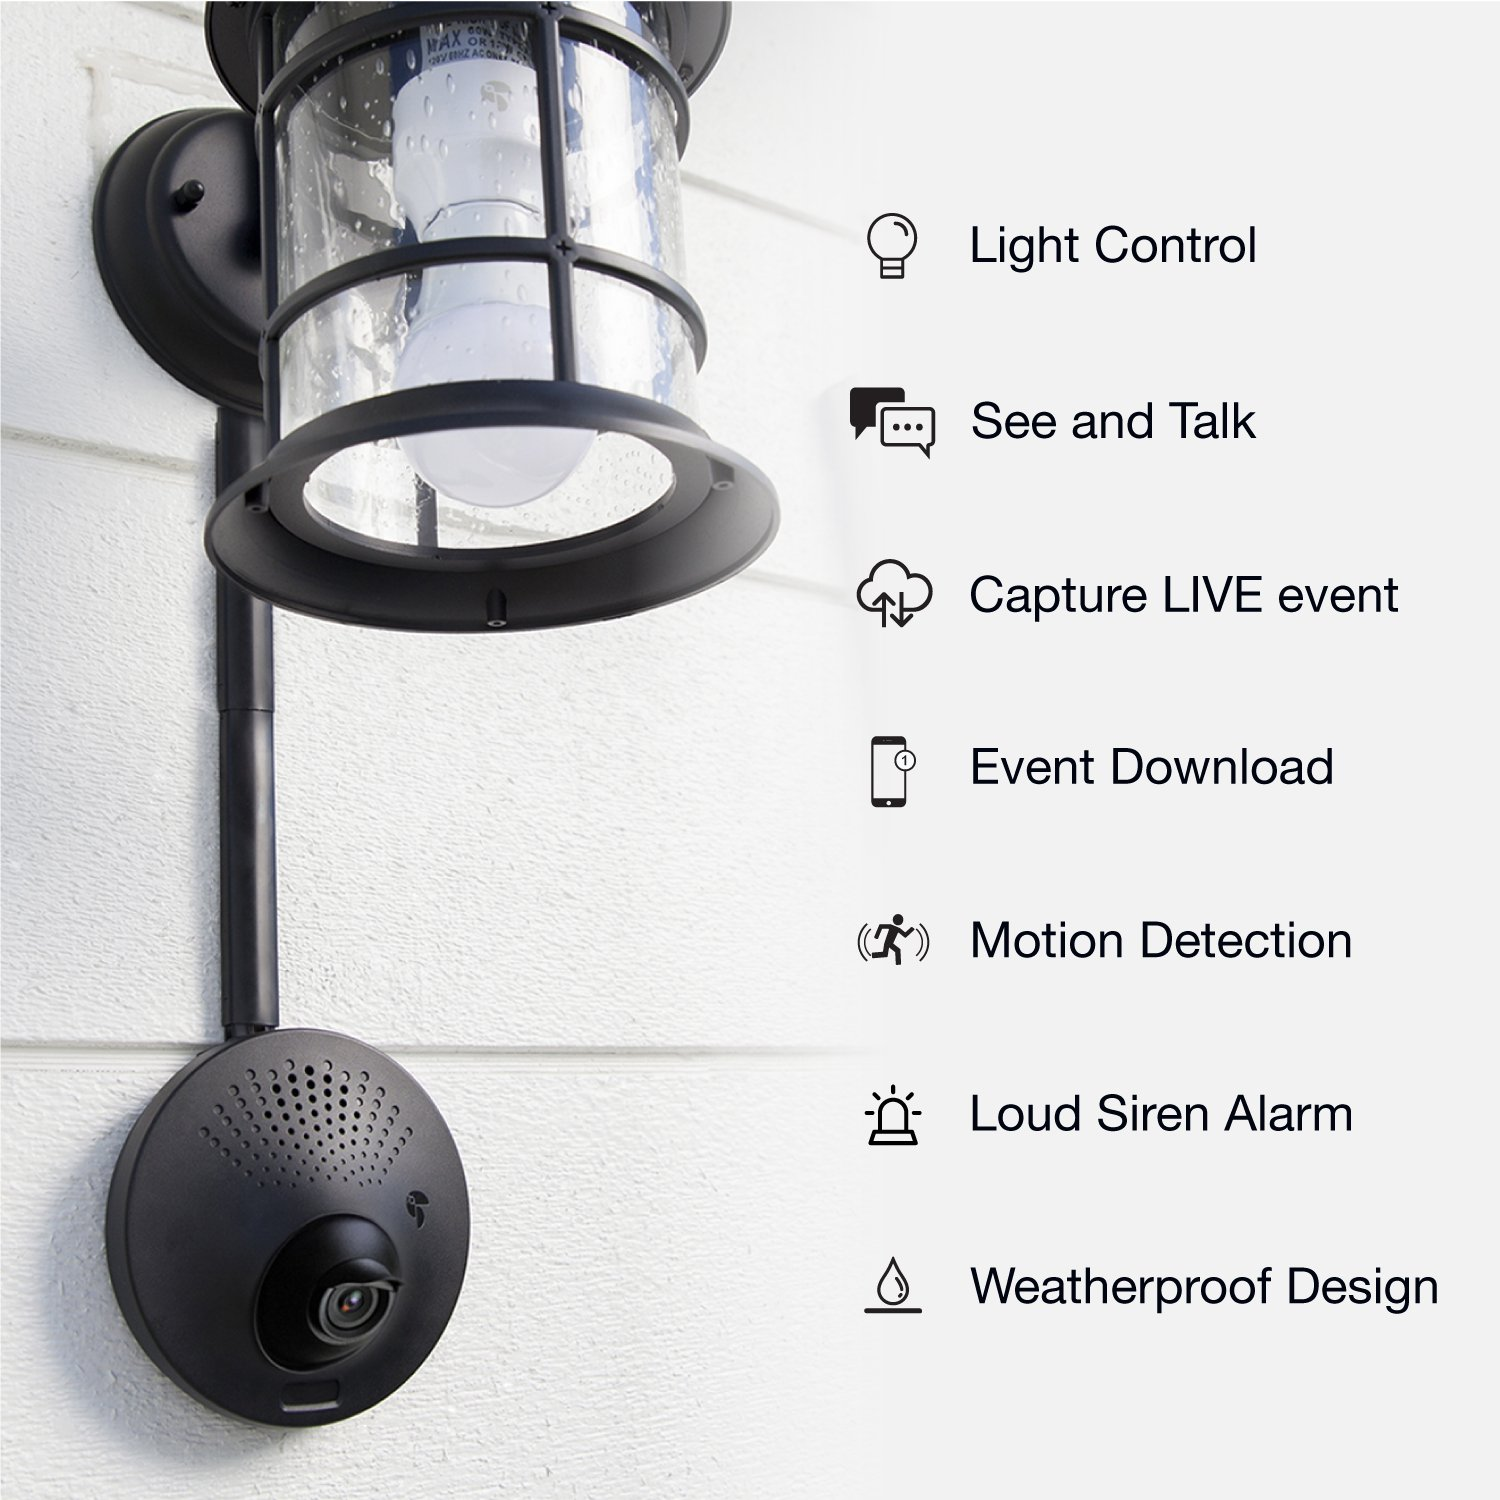 How To Install A Light Fixture Without Existing Wiring Weatherproof Outdoor Security Camera Toucan Powered By Includes Smart Socket And Bulb Works With Alexa Google Assistant Free 2 Hour Video Look Back Subscription